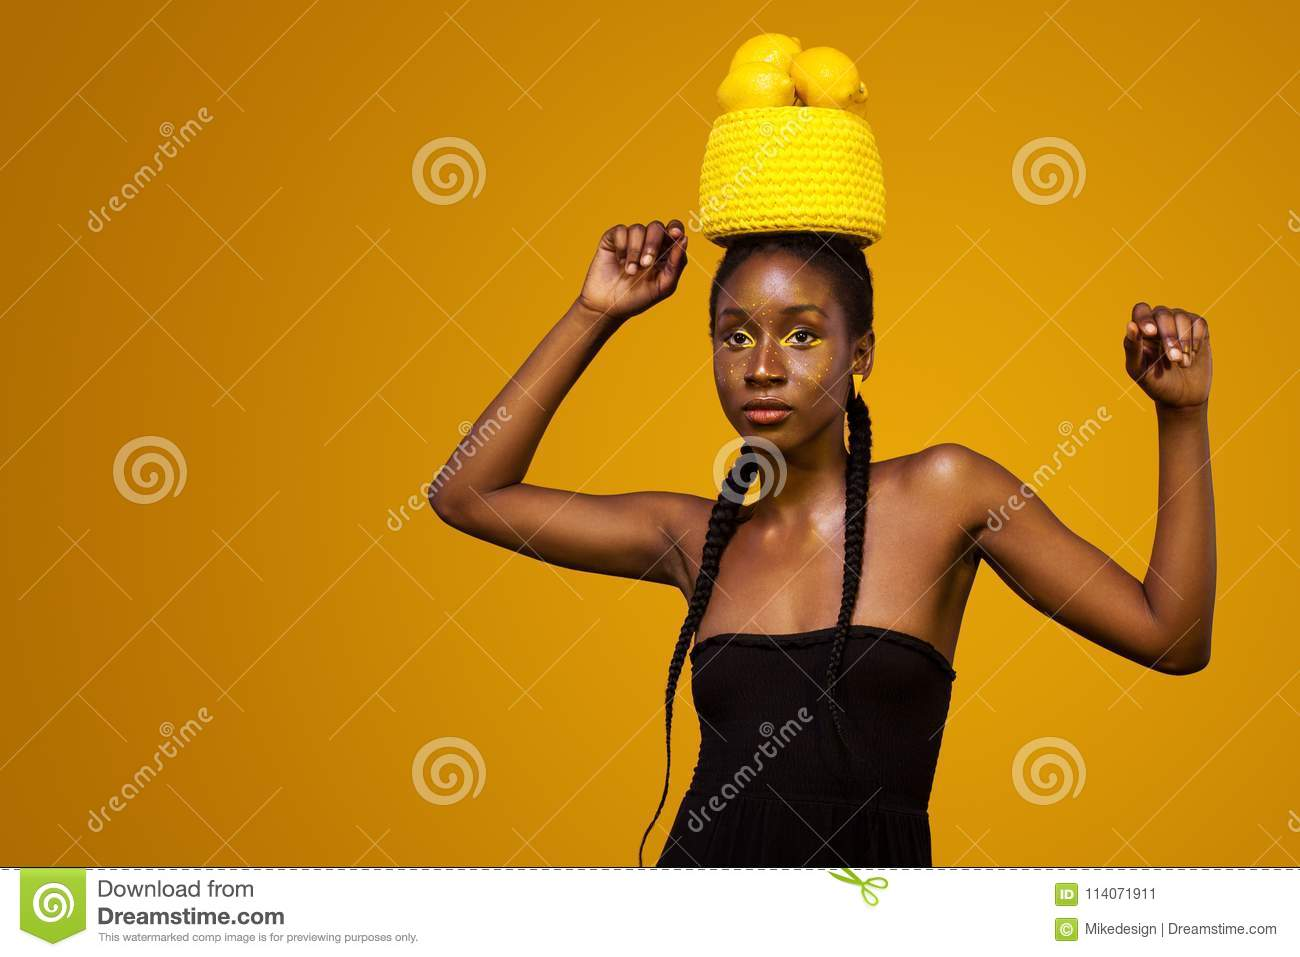 Cheerful young african woman with yellow makeup on her eyes. Female model against yellow background with yellow lemons.